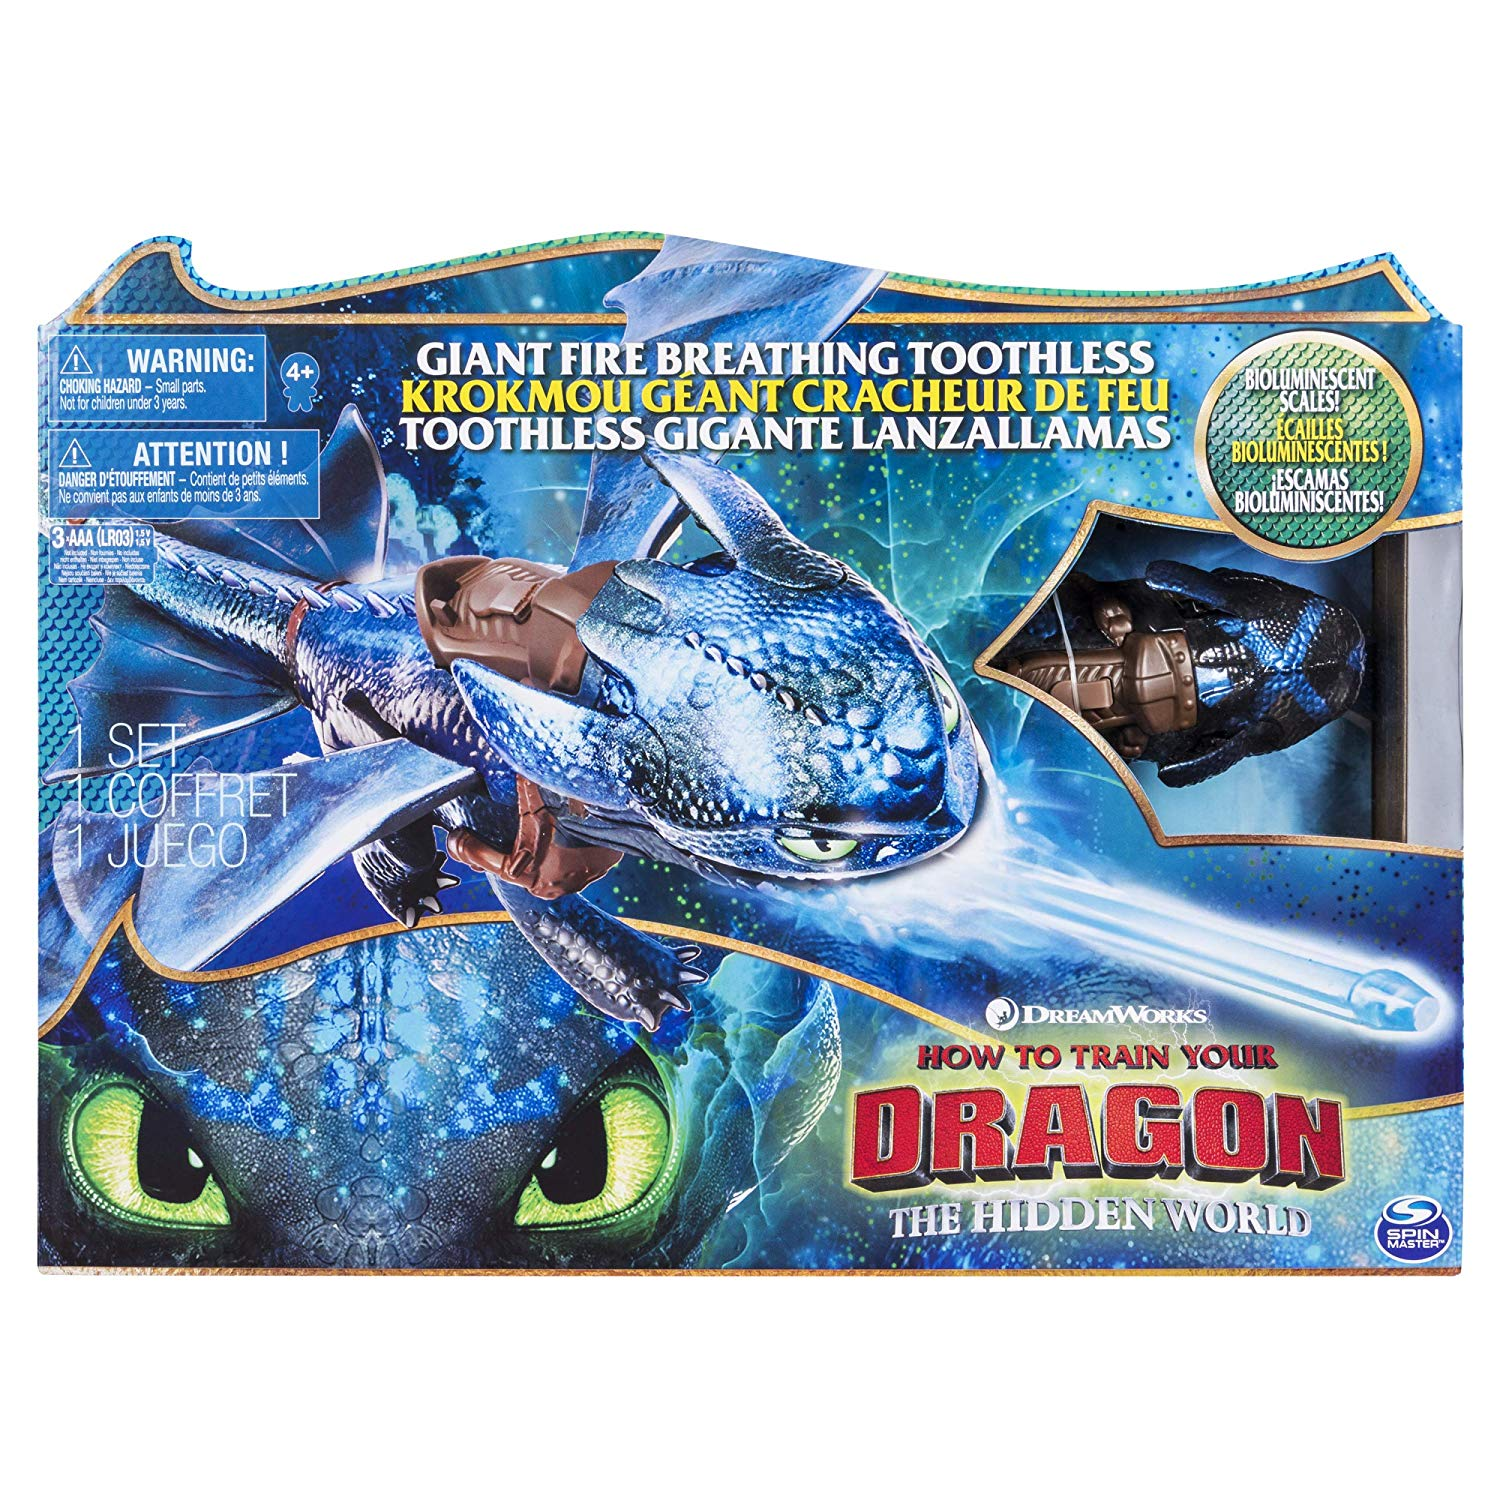 20 inch Fire Breathing Effects Giant Toothless Dragons 6045436 DreamWorks